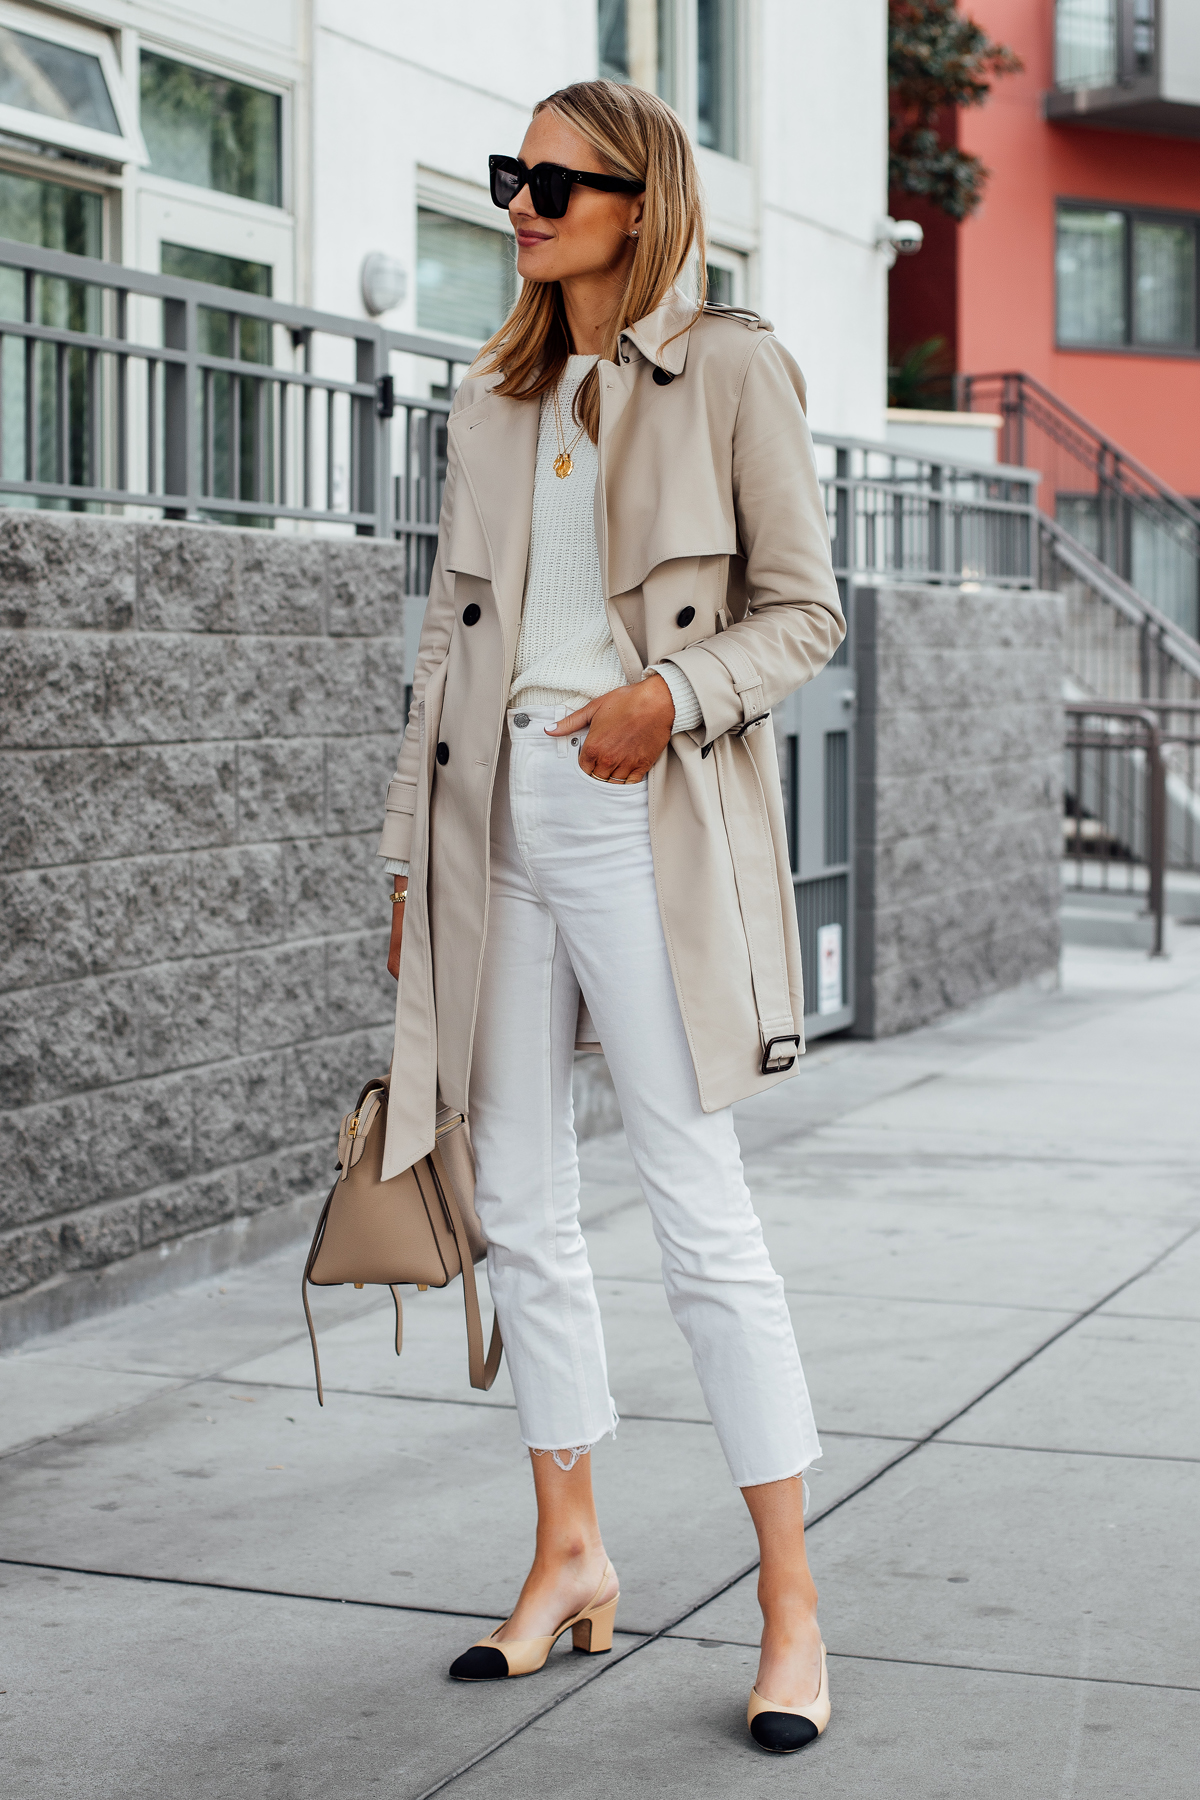 Blonde Woman Wearing Club Monaco Trench Coat White Sweater Everlane White Cropped Jeans Chanel Slingback Shoes Fashion Jackson San Diego Fashion Blogger Street Style